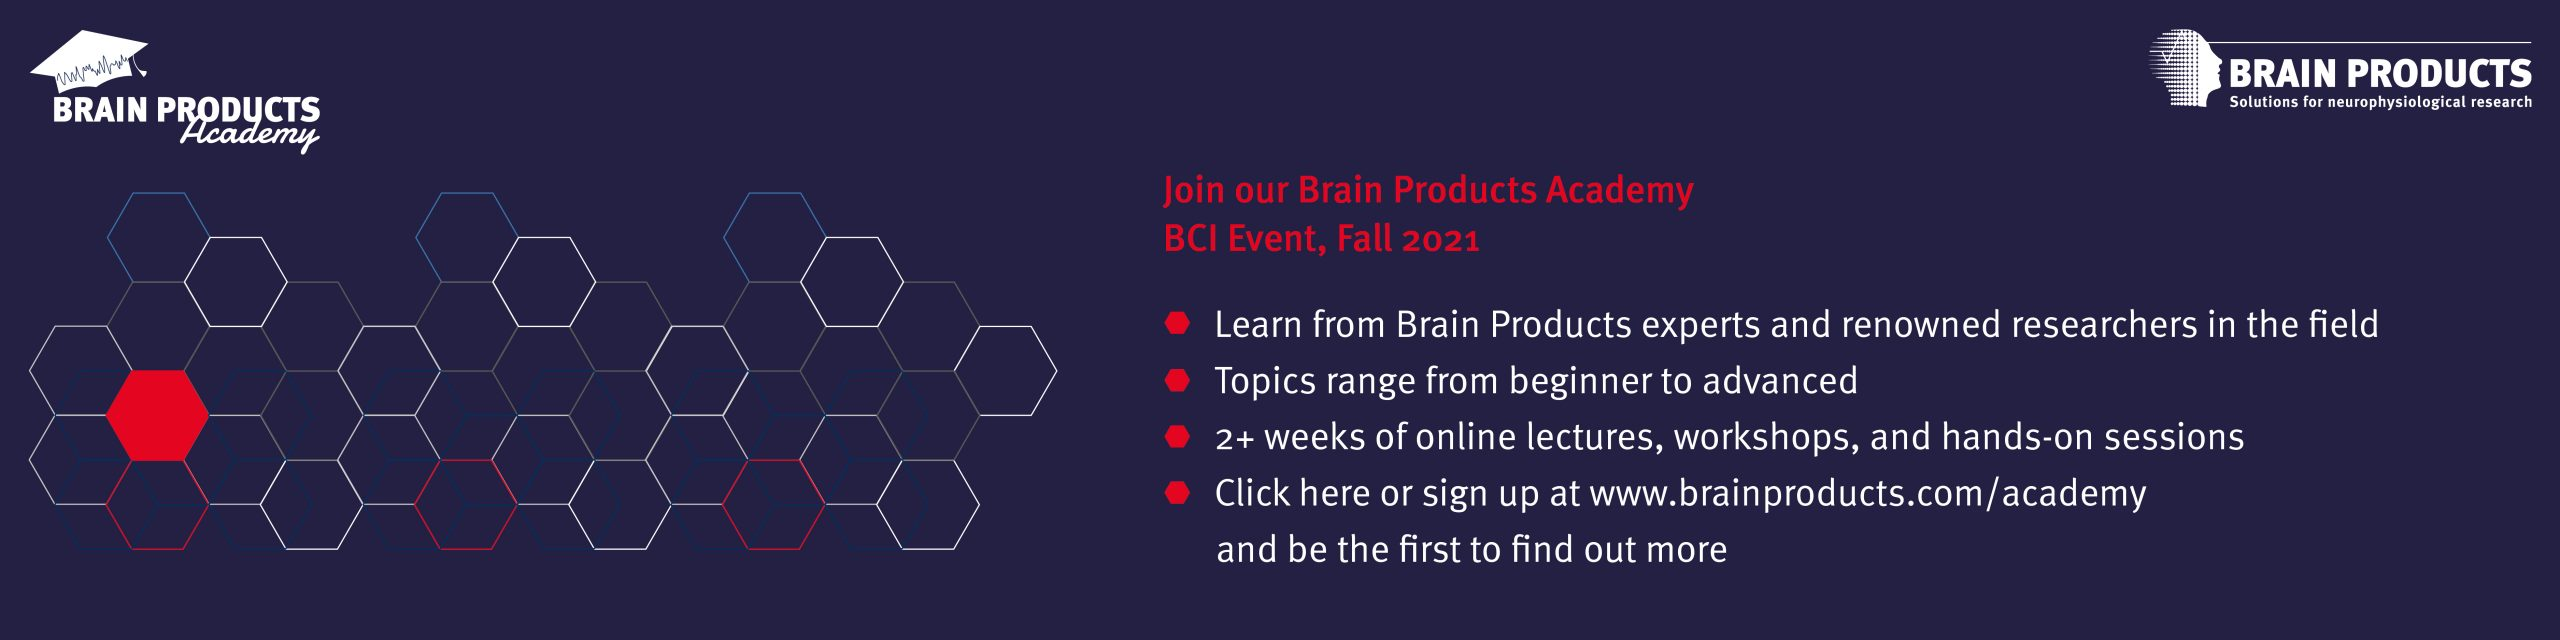 BCI Event Banner